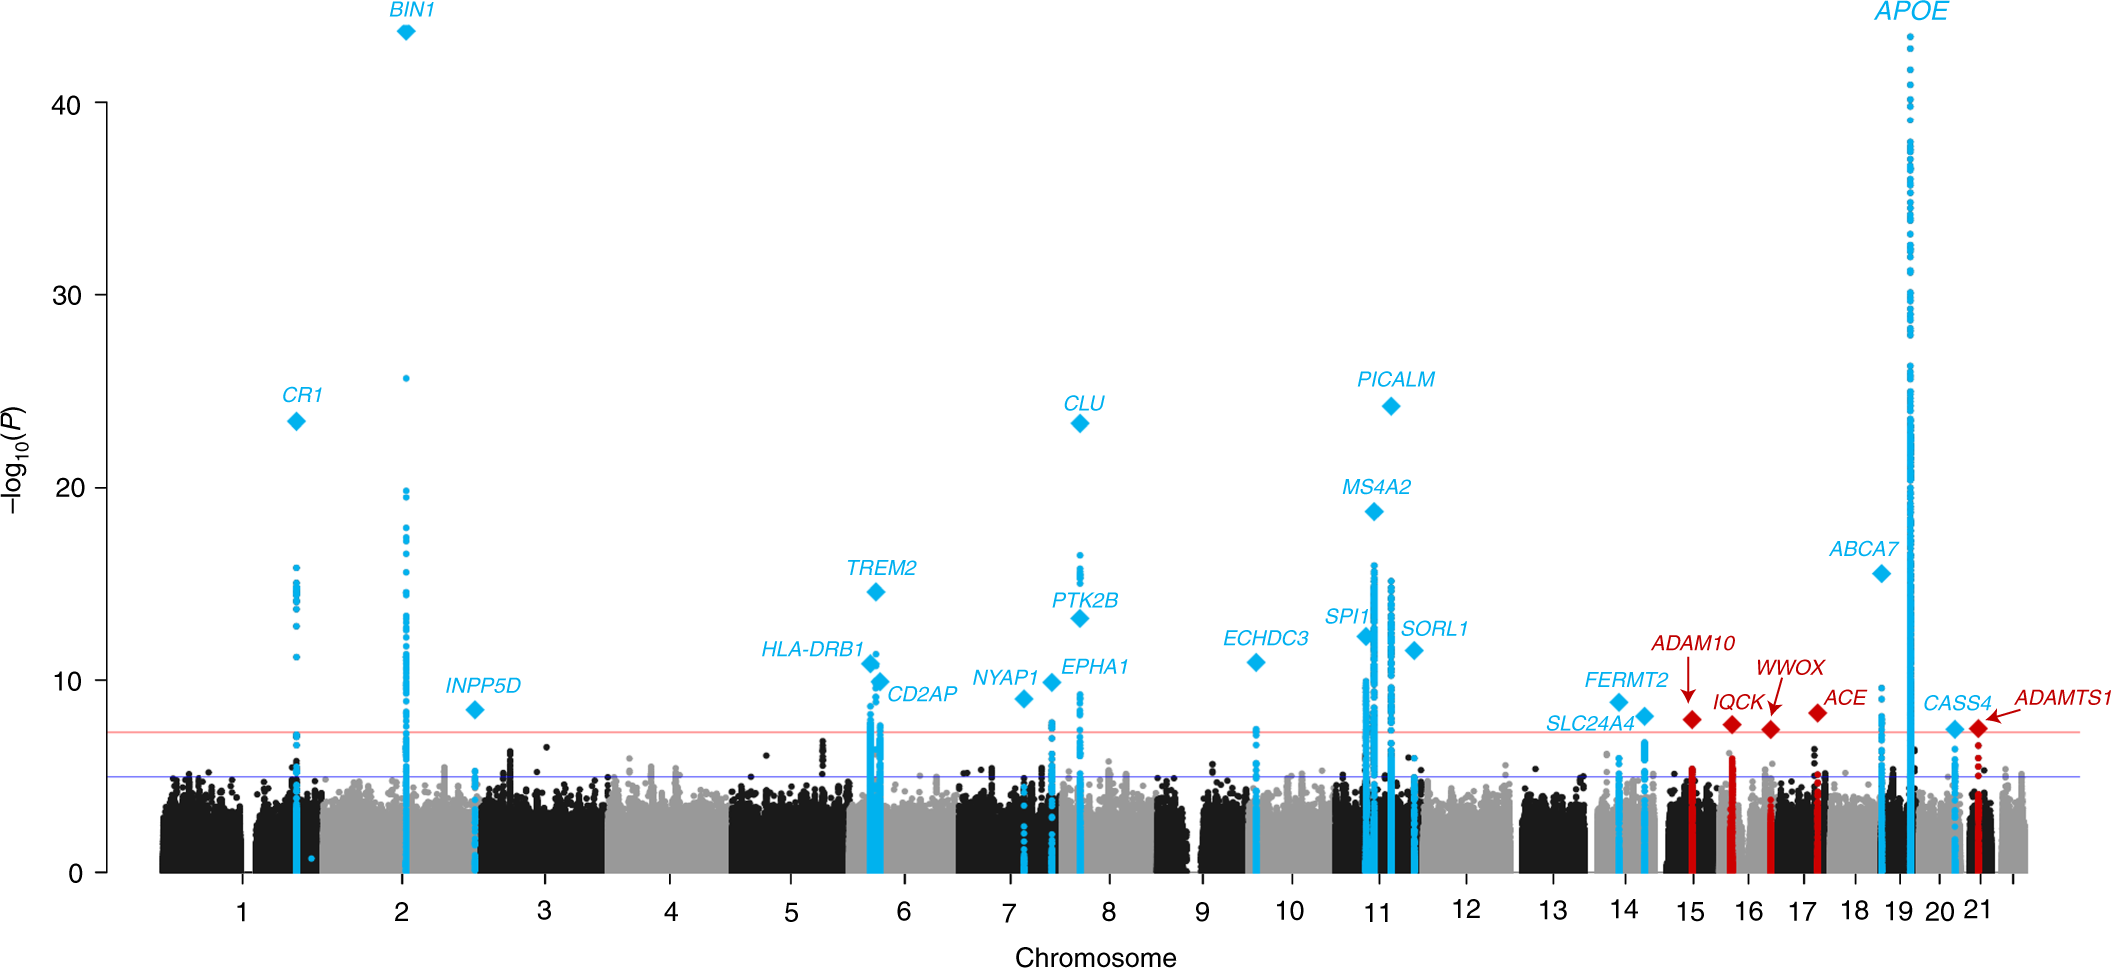 Genetic Meta Ysis Of Diagnosed Alzheimer S Disease Identifies New Risk Loci And Implicates Aβ Tau Immunity Lipid Processing Nature Genetics